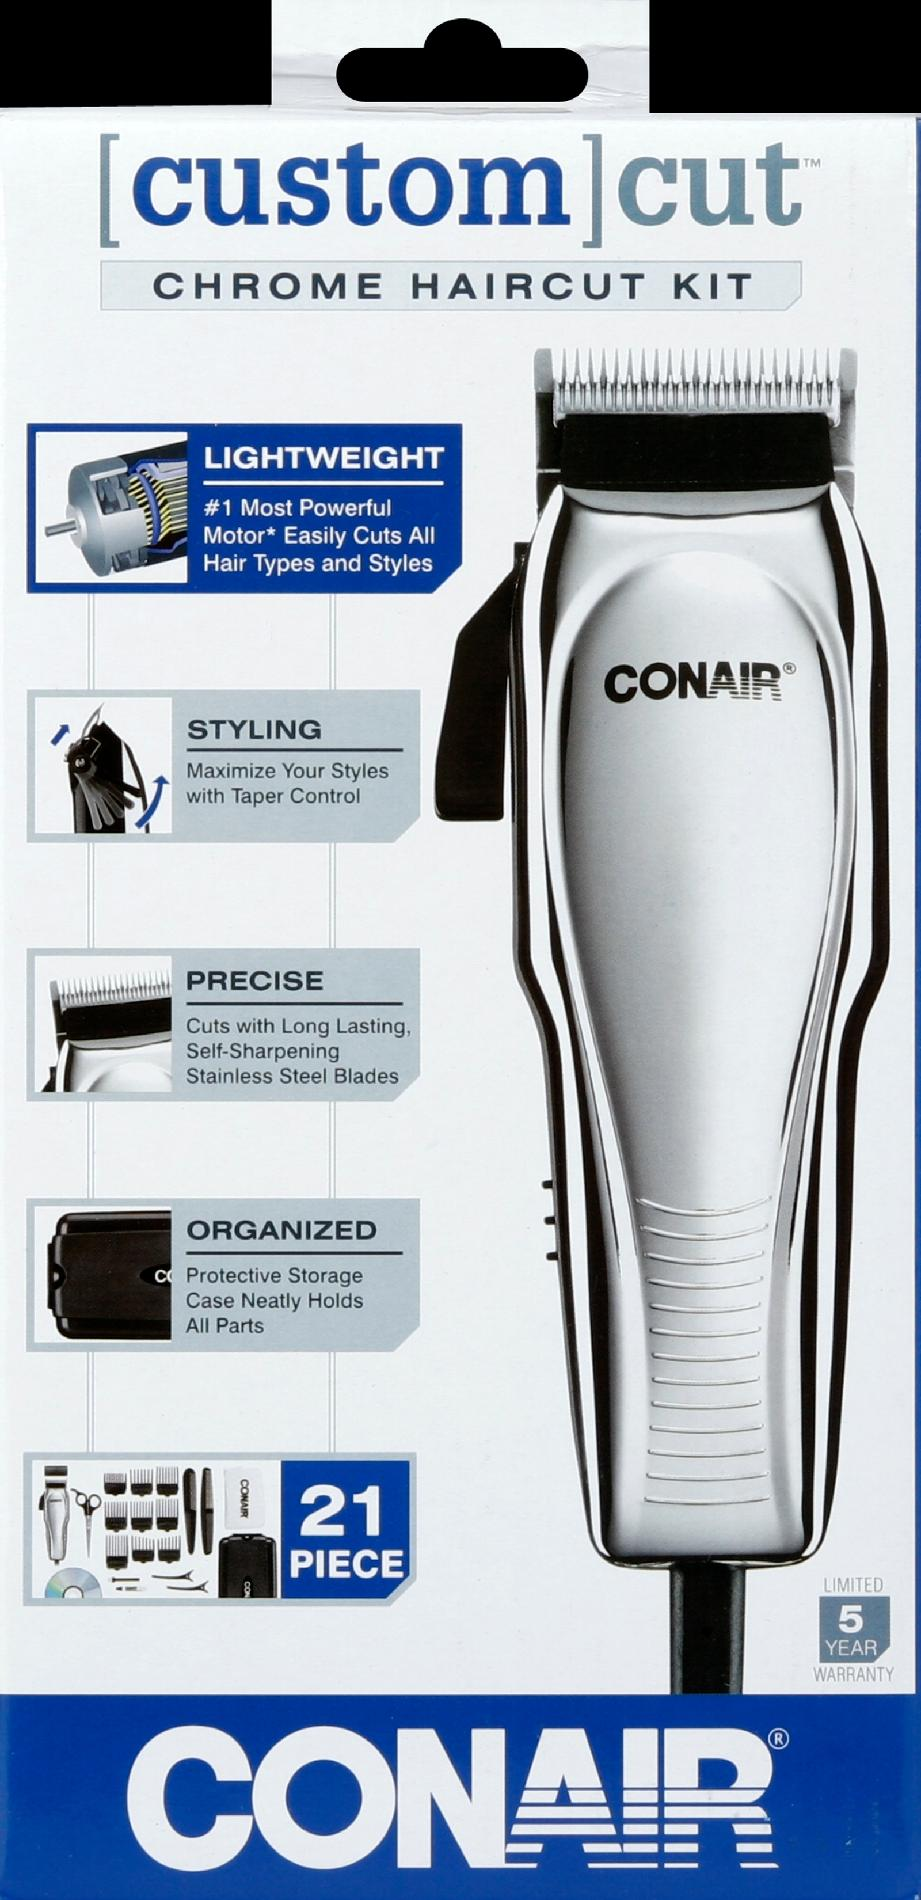 Conair Custom Kit Haircut Kit, Chrome 1 haircut kit